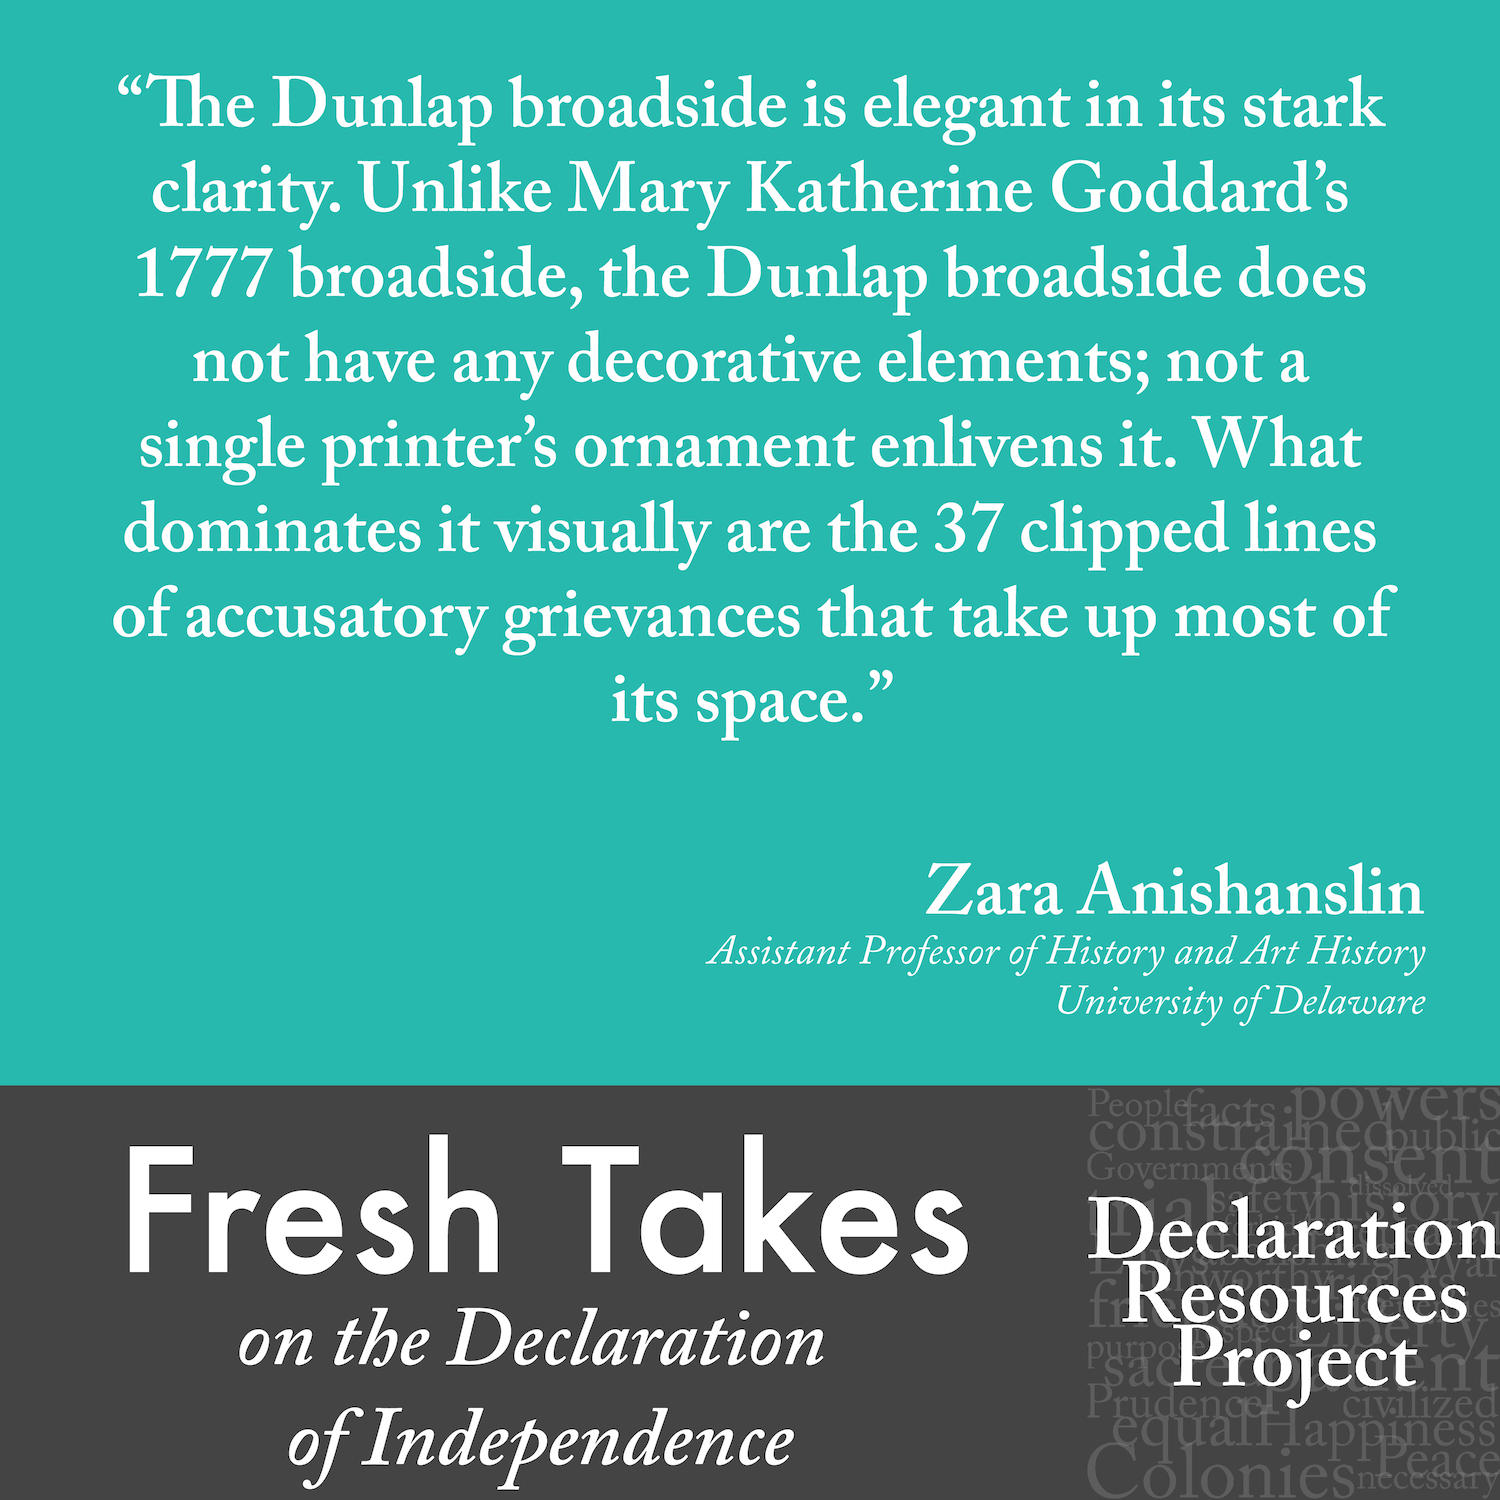 Zara Anishanslin's Fresh Take on the Declaration of Independence